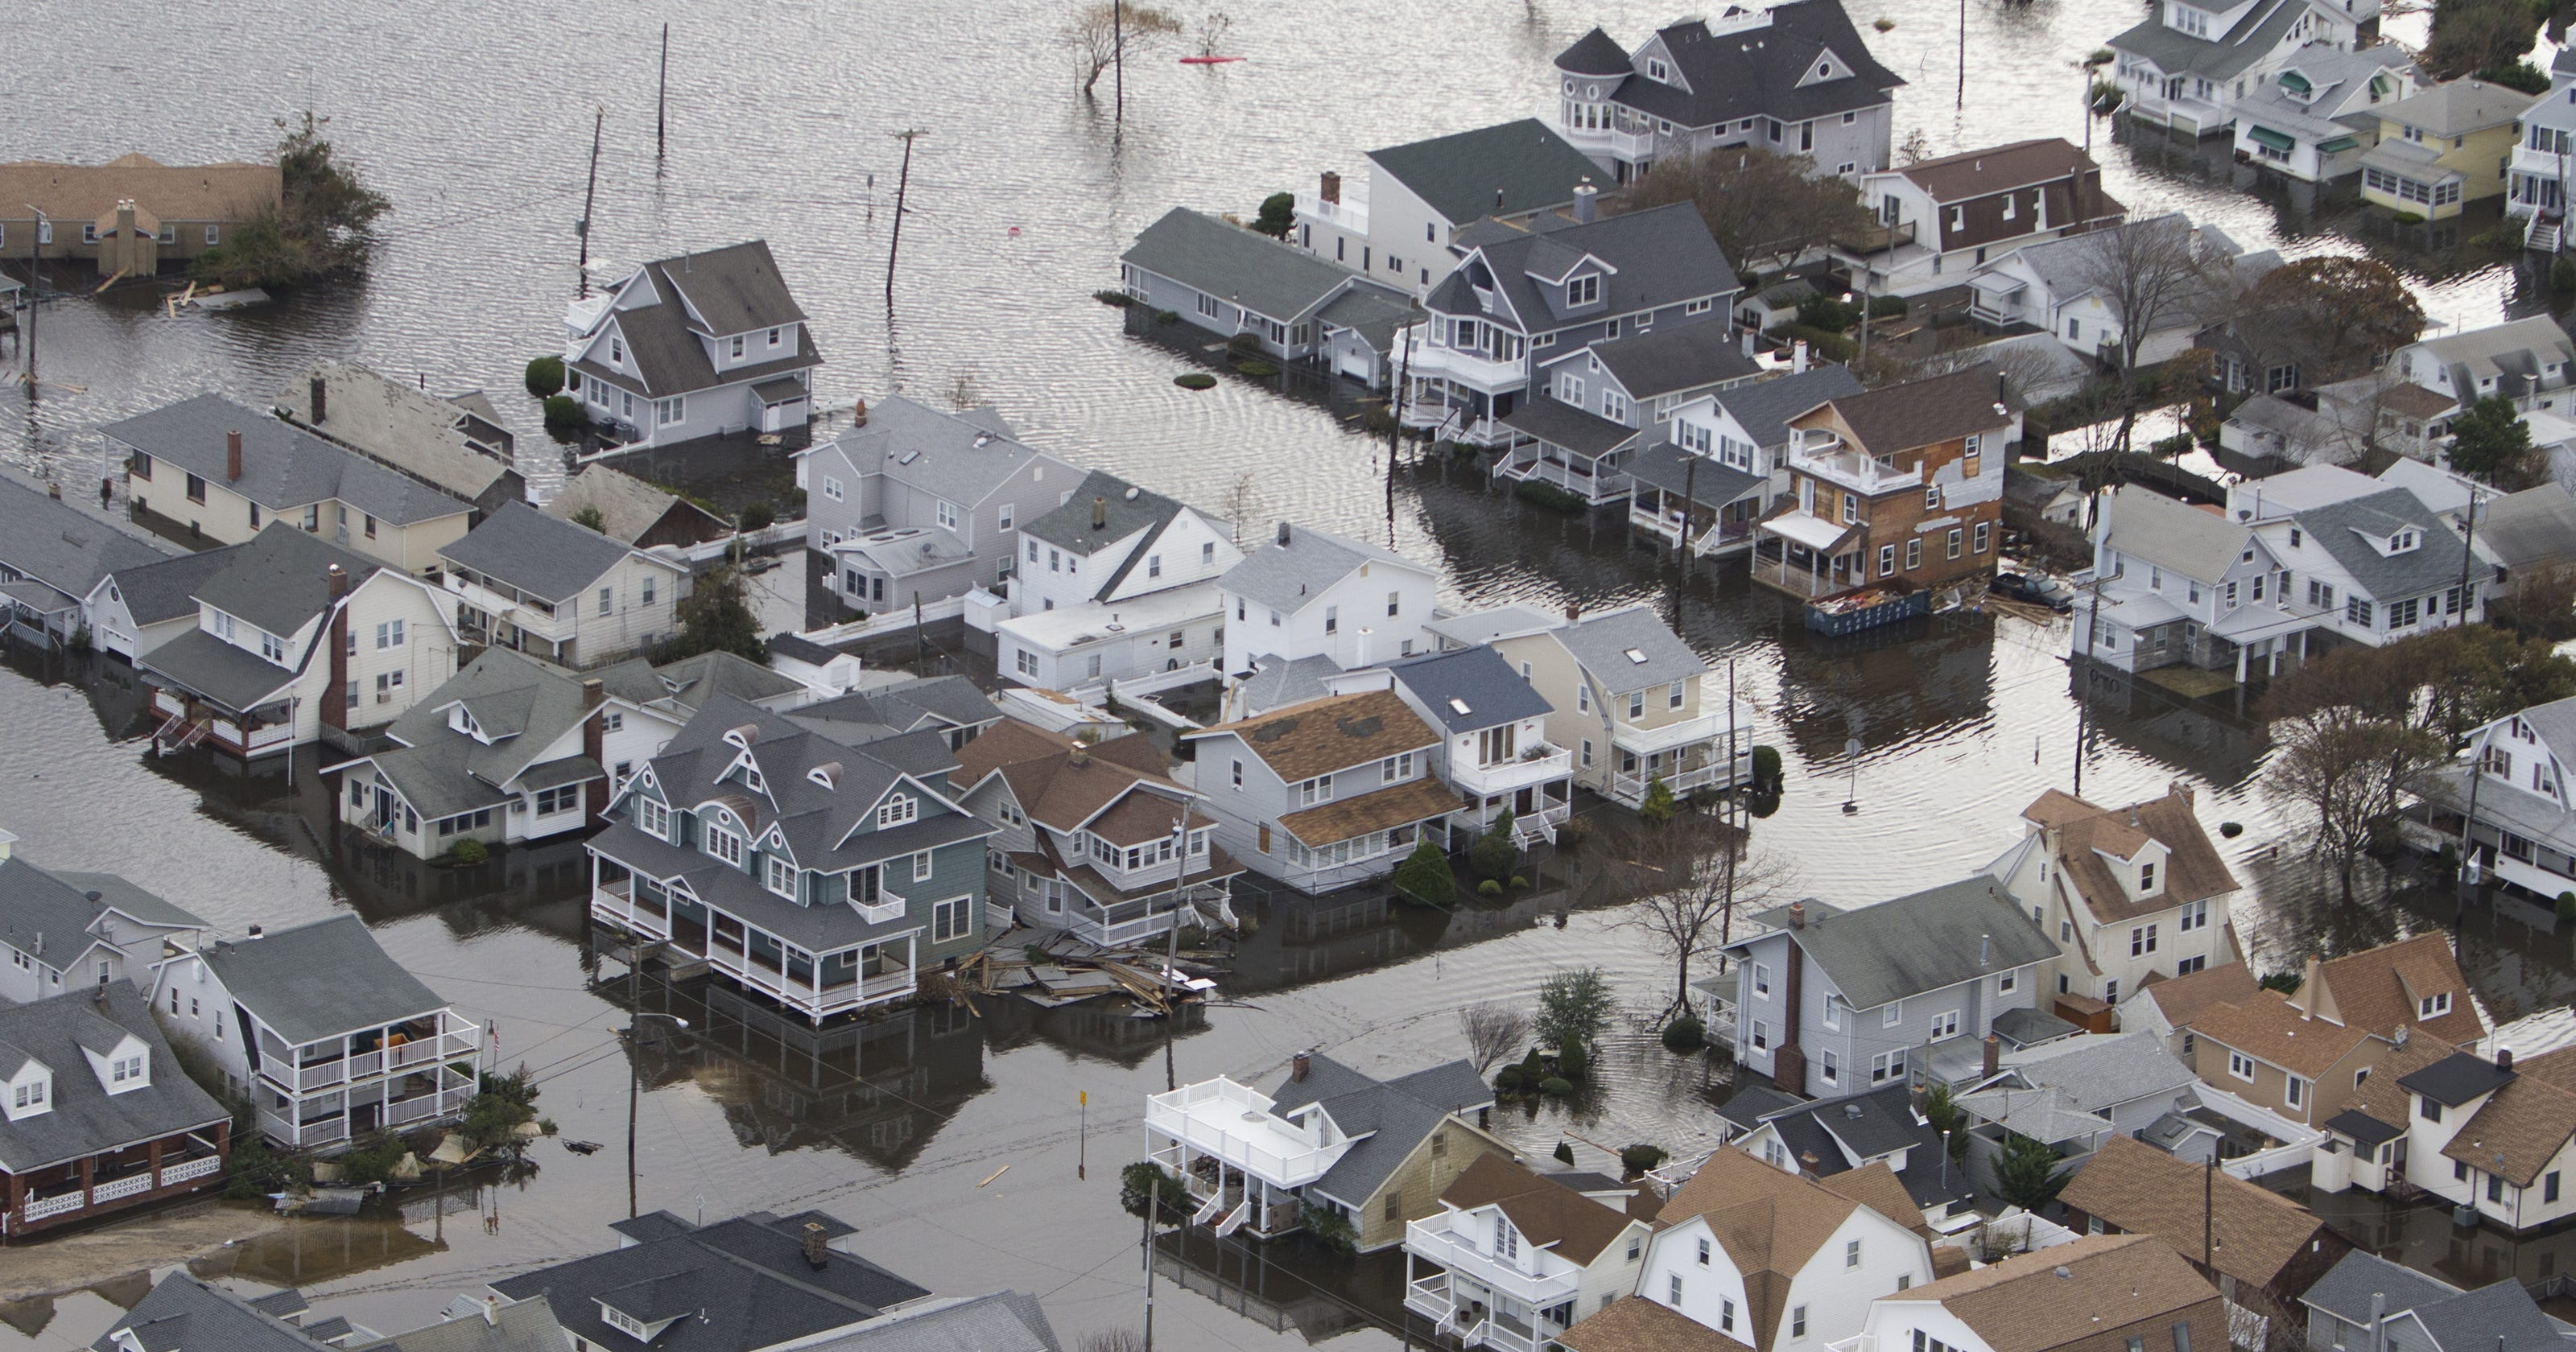 society after the hurricane sandy catastrophe in the united states Making sandy the second-costliest cyclone to hit the united states since 1900 1   regained hurricane strength by 1200 utc 27 october when the center was   only one tornado was reported in association with sandy, an f-0 (winds between  73-112  in fact, the extent of catastrophic damage along the.